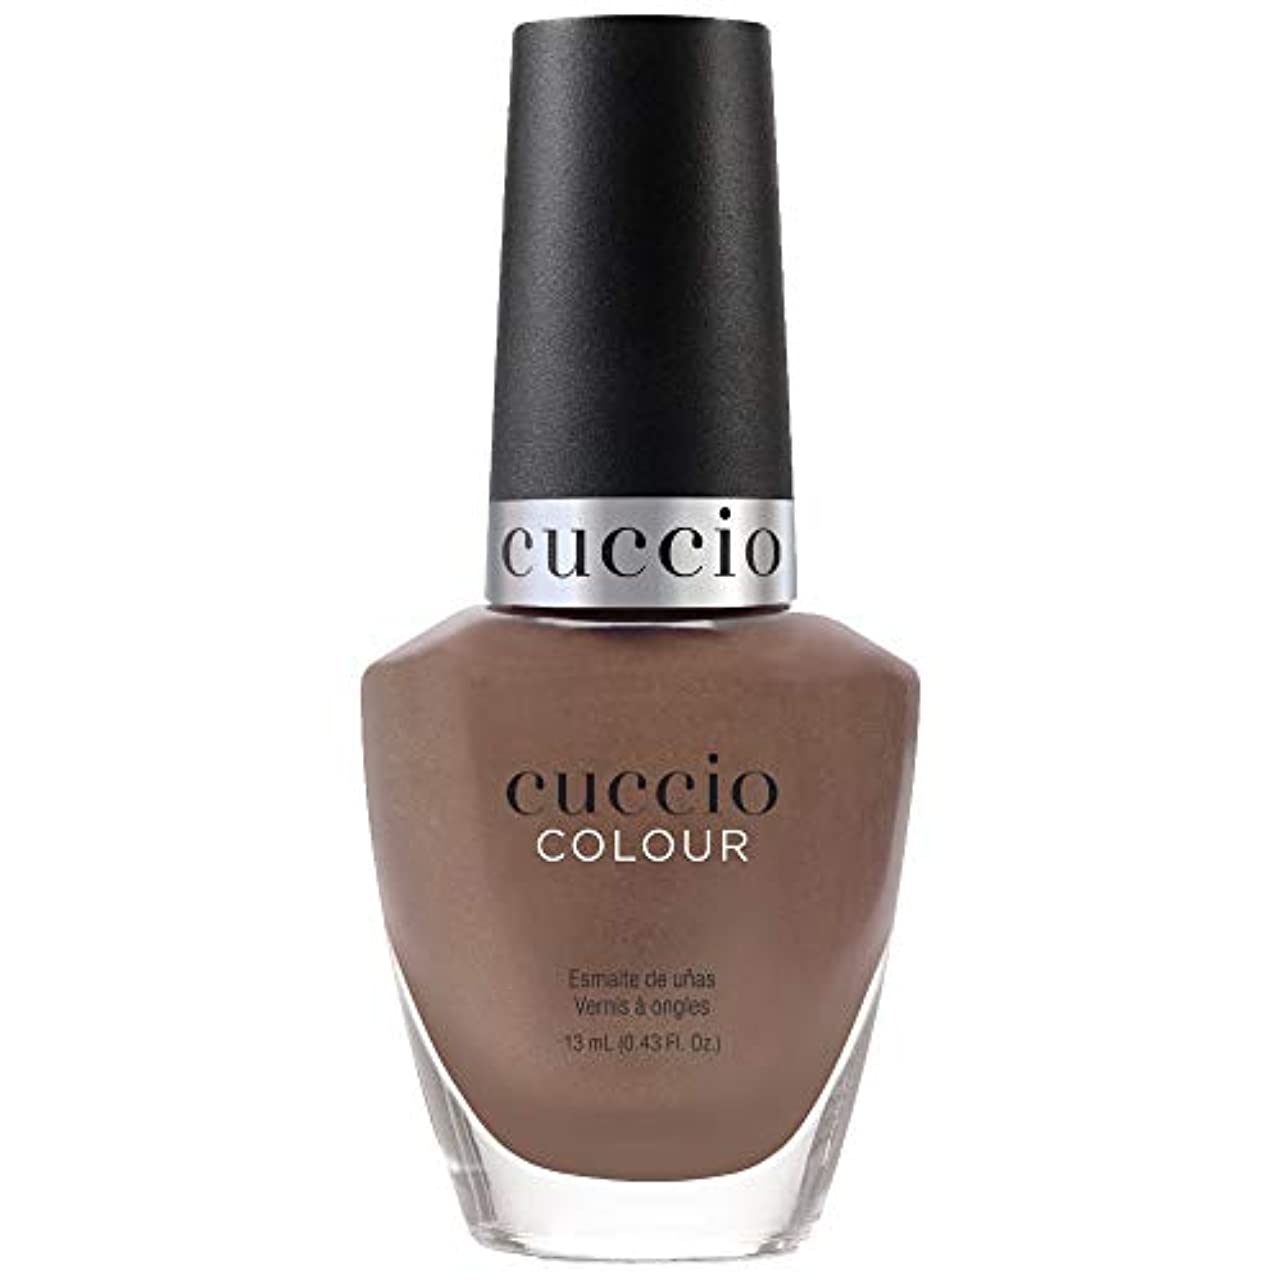 退屈言う整理するCuccio Colour Nail Lacquer - Tapestry Collection - Positive Thread - 13 mL / 0.43 oz